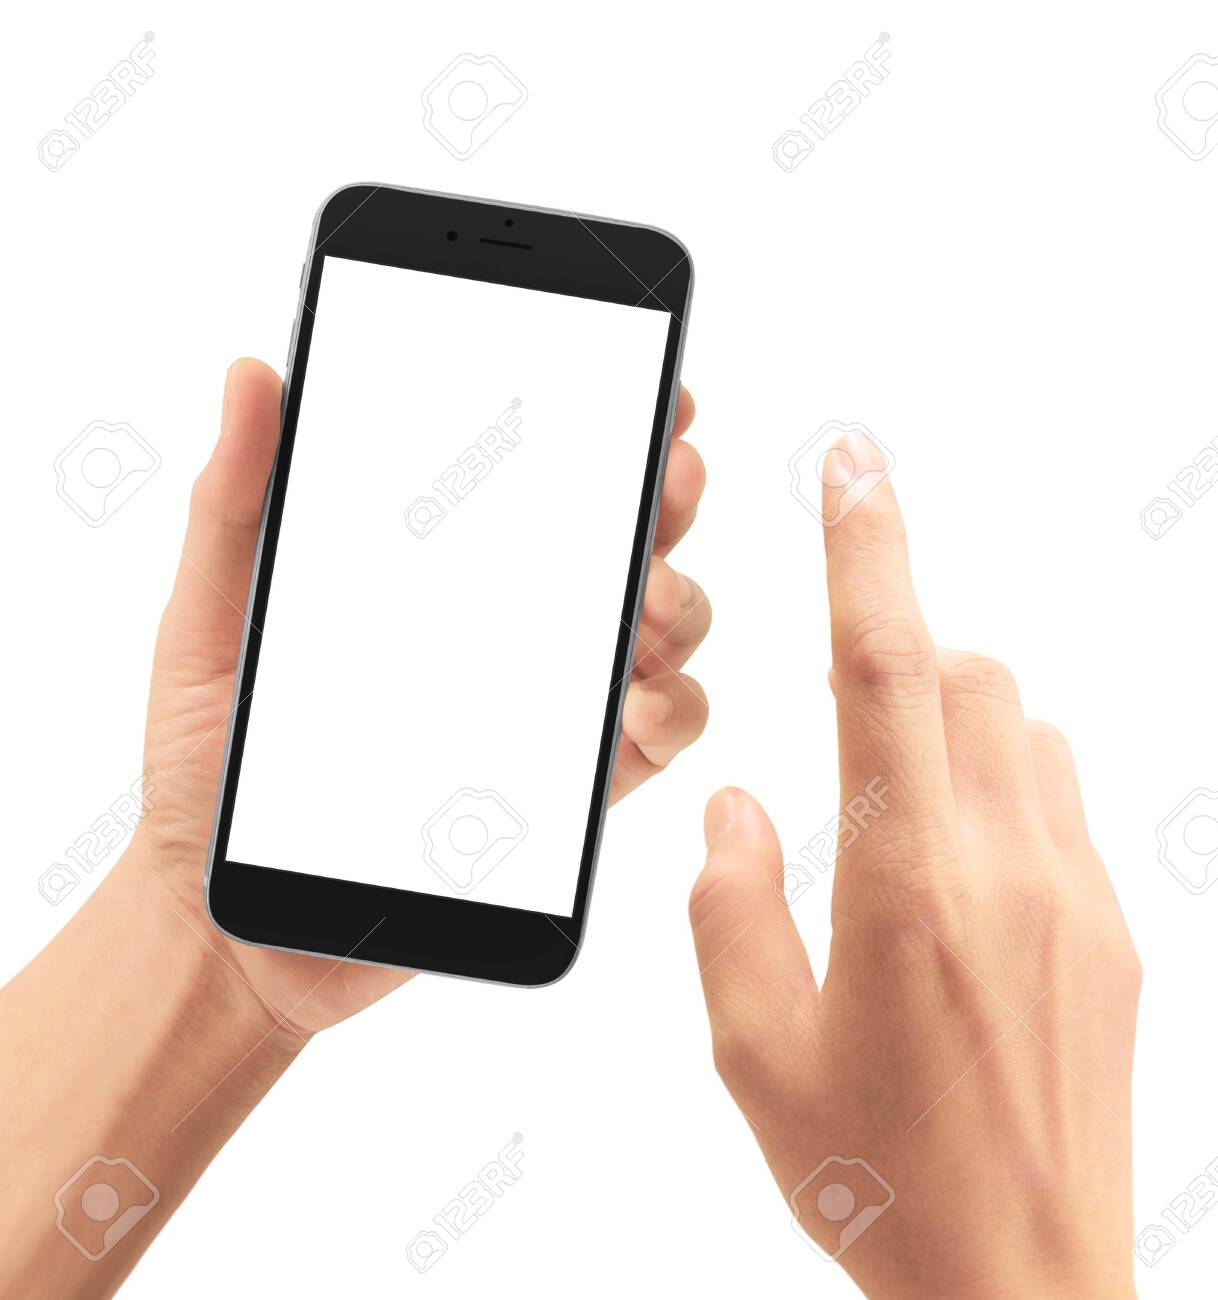 Hand holding smartphone device and touching screen - 129071612